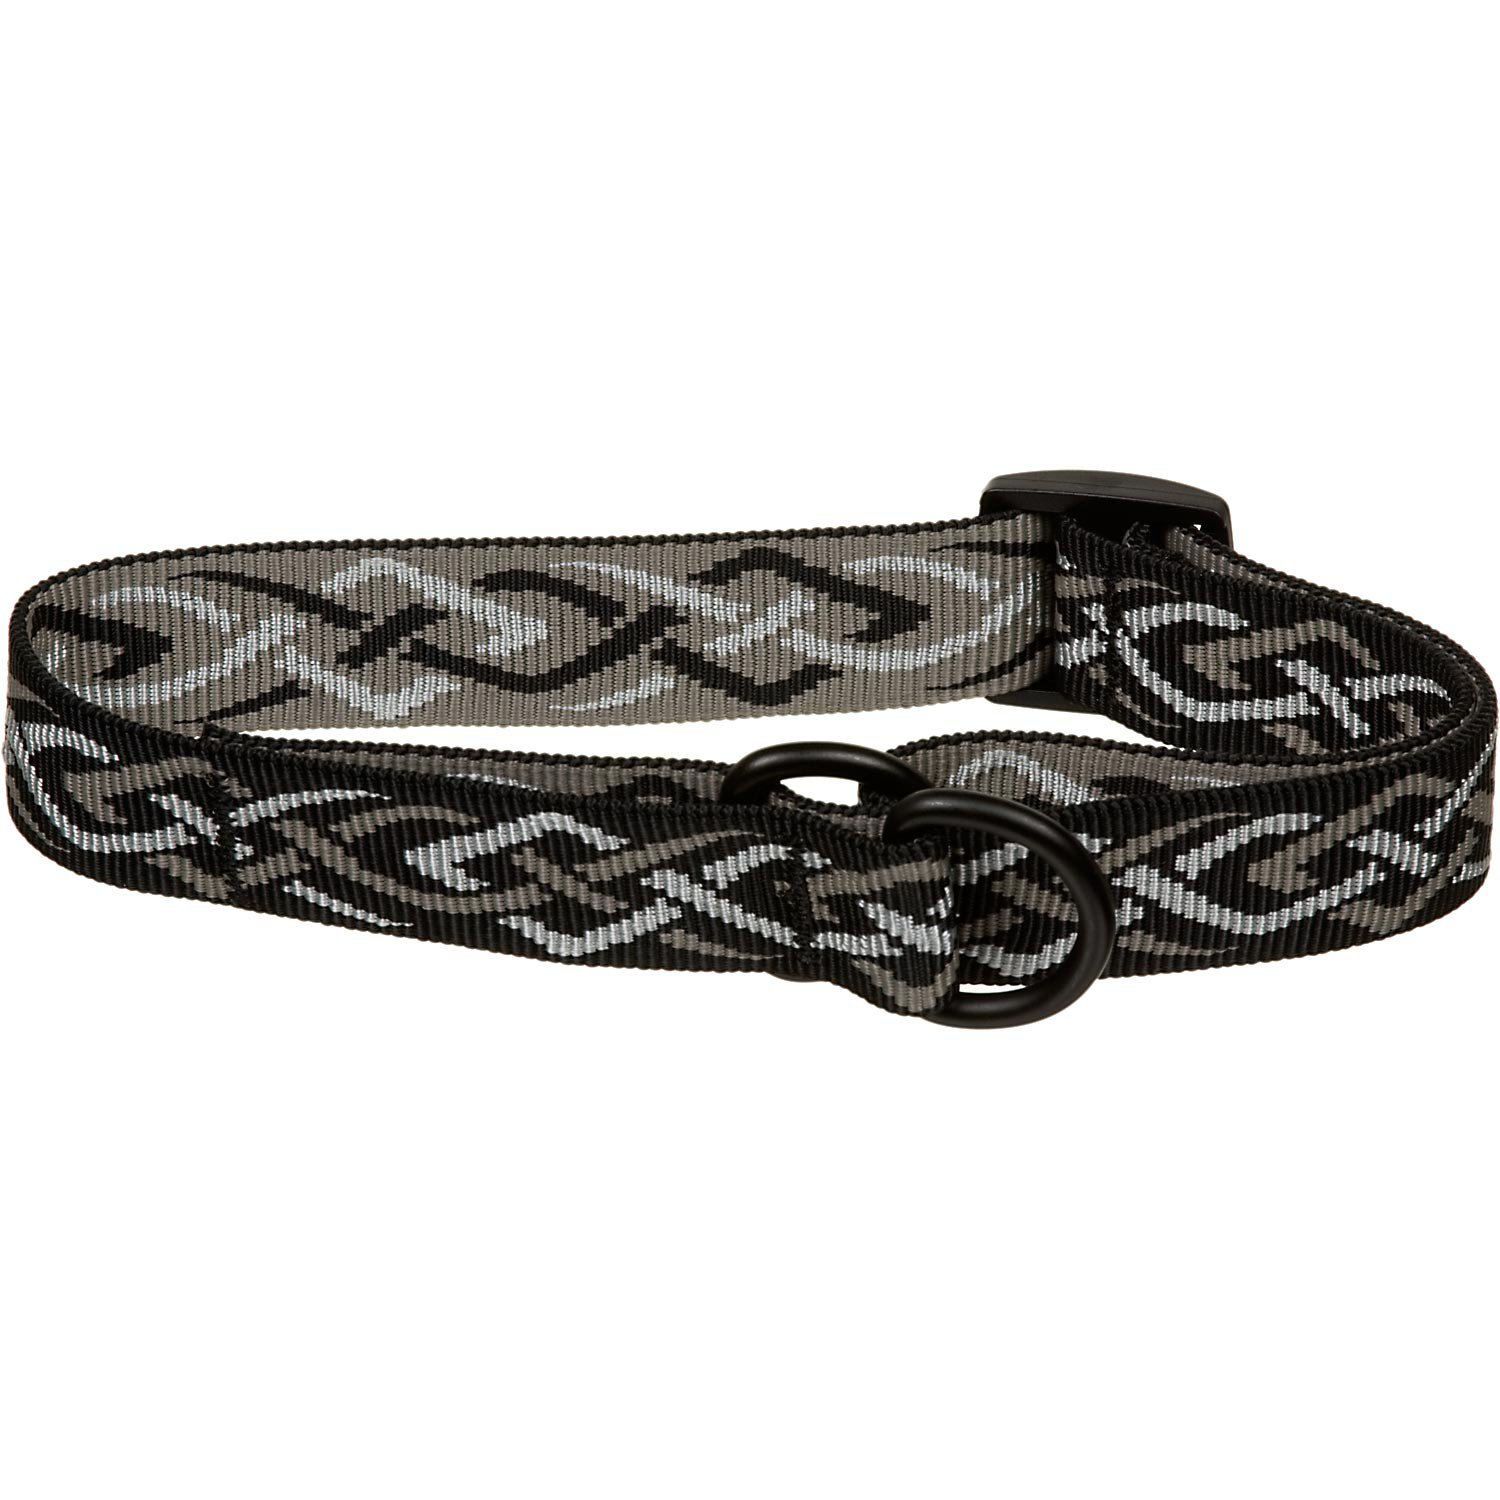 Bison Pet Black Thorn Adjustable Nylon Dog Slip Collar